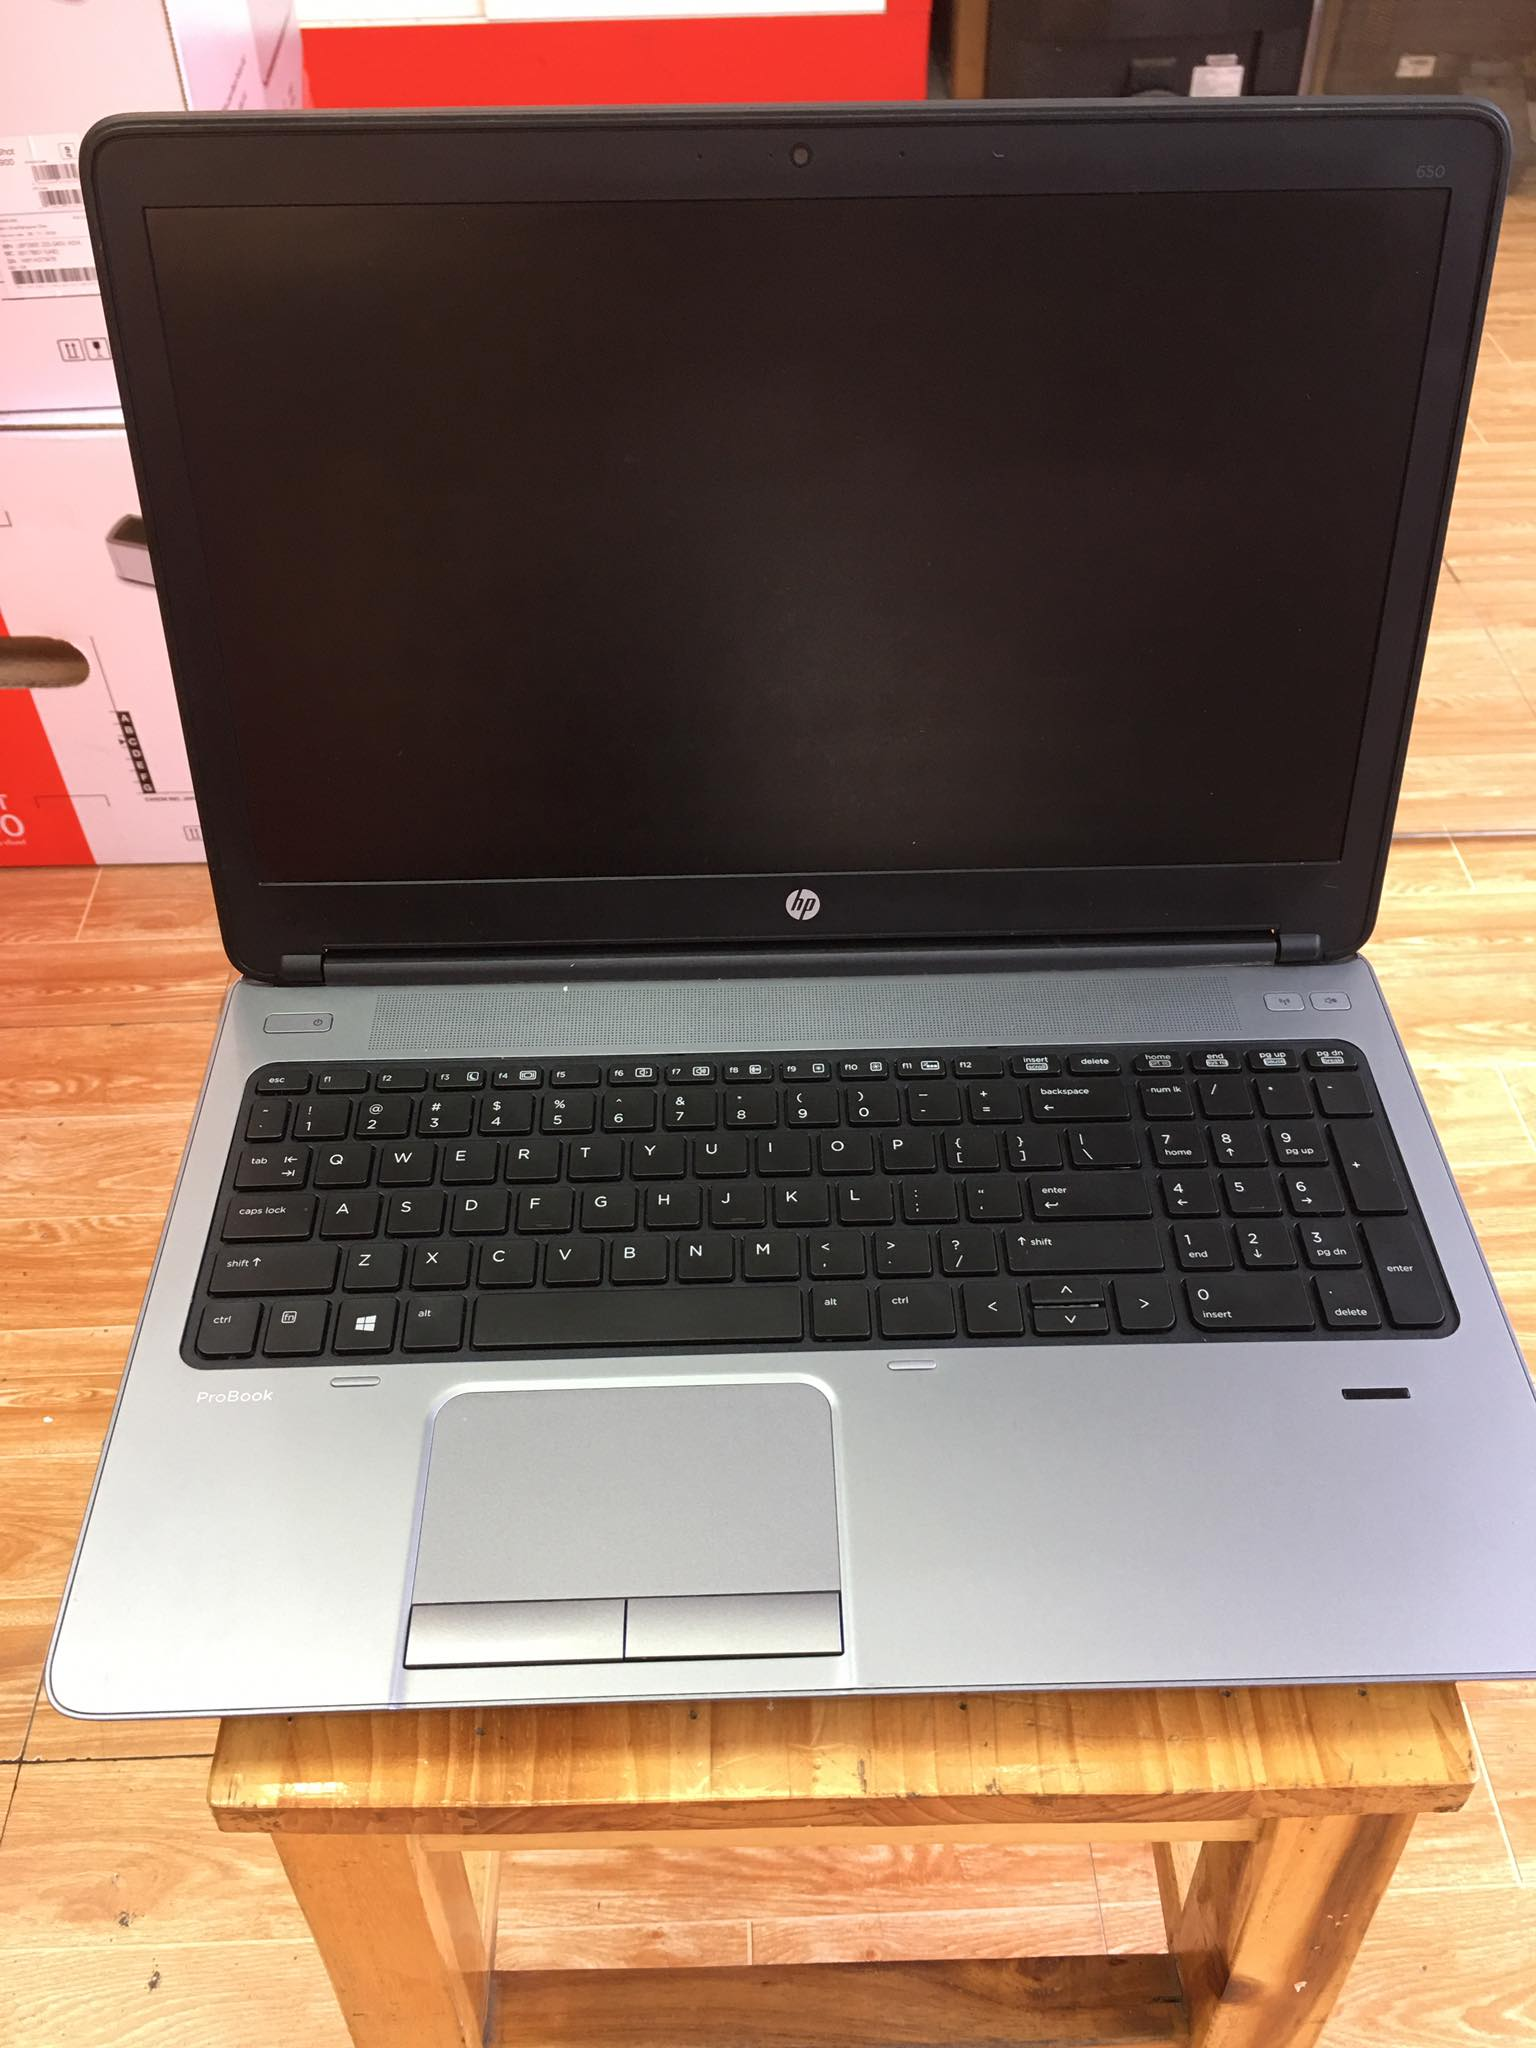 Laptop HP Probook 650G1 (Core i5-4300/ Ram 4G/ HDD 320G)